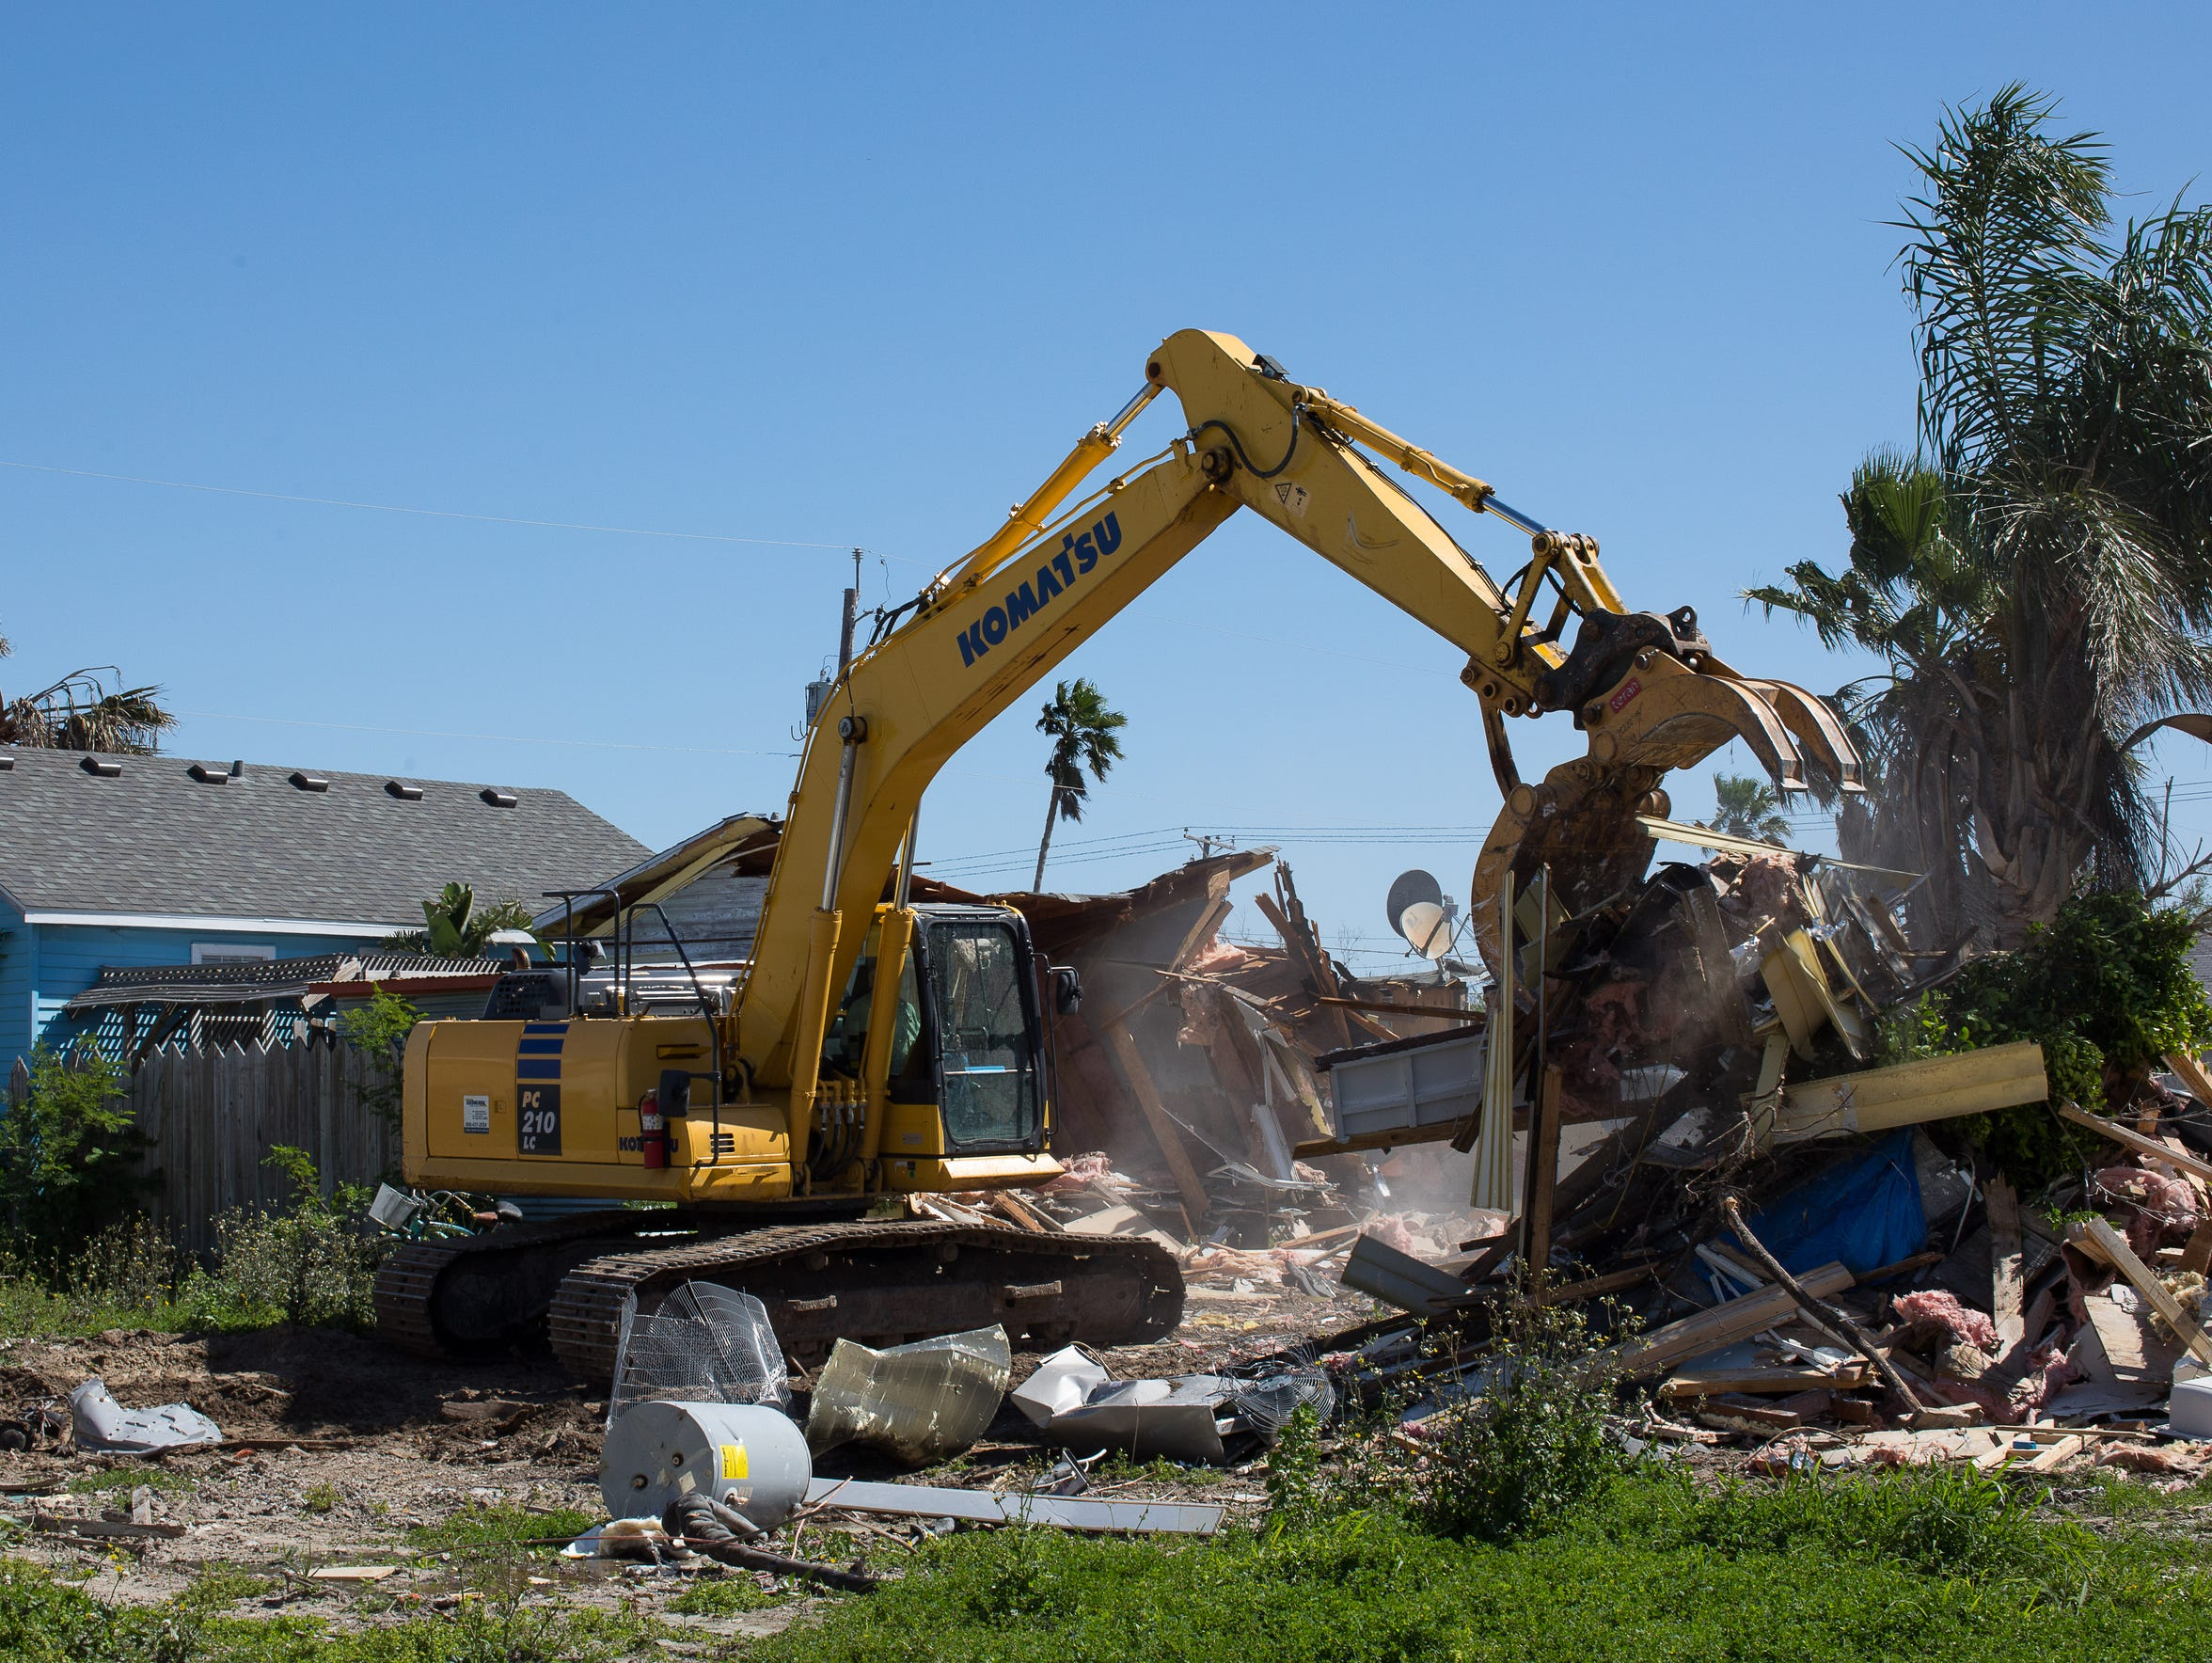 Tom Gomez' home on East Oakes Ave. was demolished March 20. The house, badly damaged by Hurricane Harvey, was composed of a pair of adjoined cottages. The home he and his wife plan to build won't look the same as the one torn down, but they will try to make it fit in with the rest of the surrounding Old Town neighborhood.